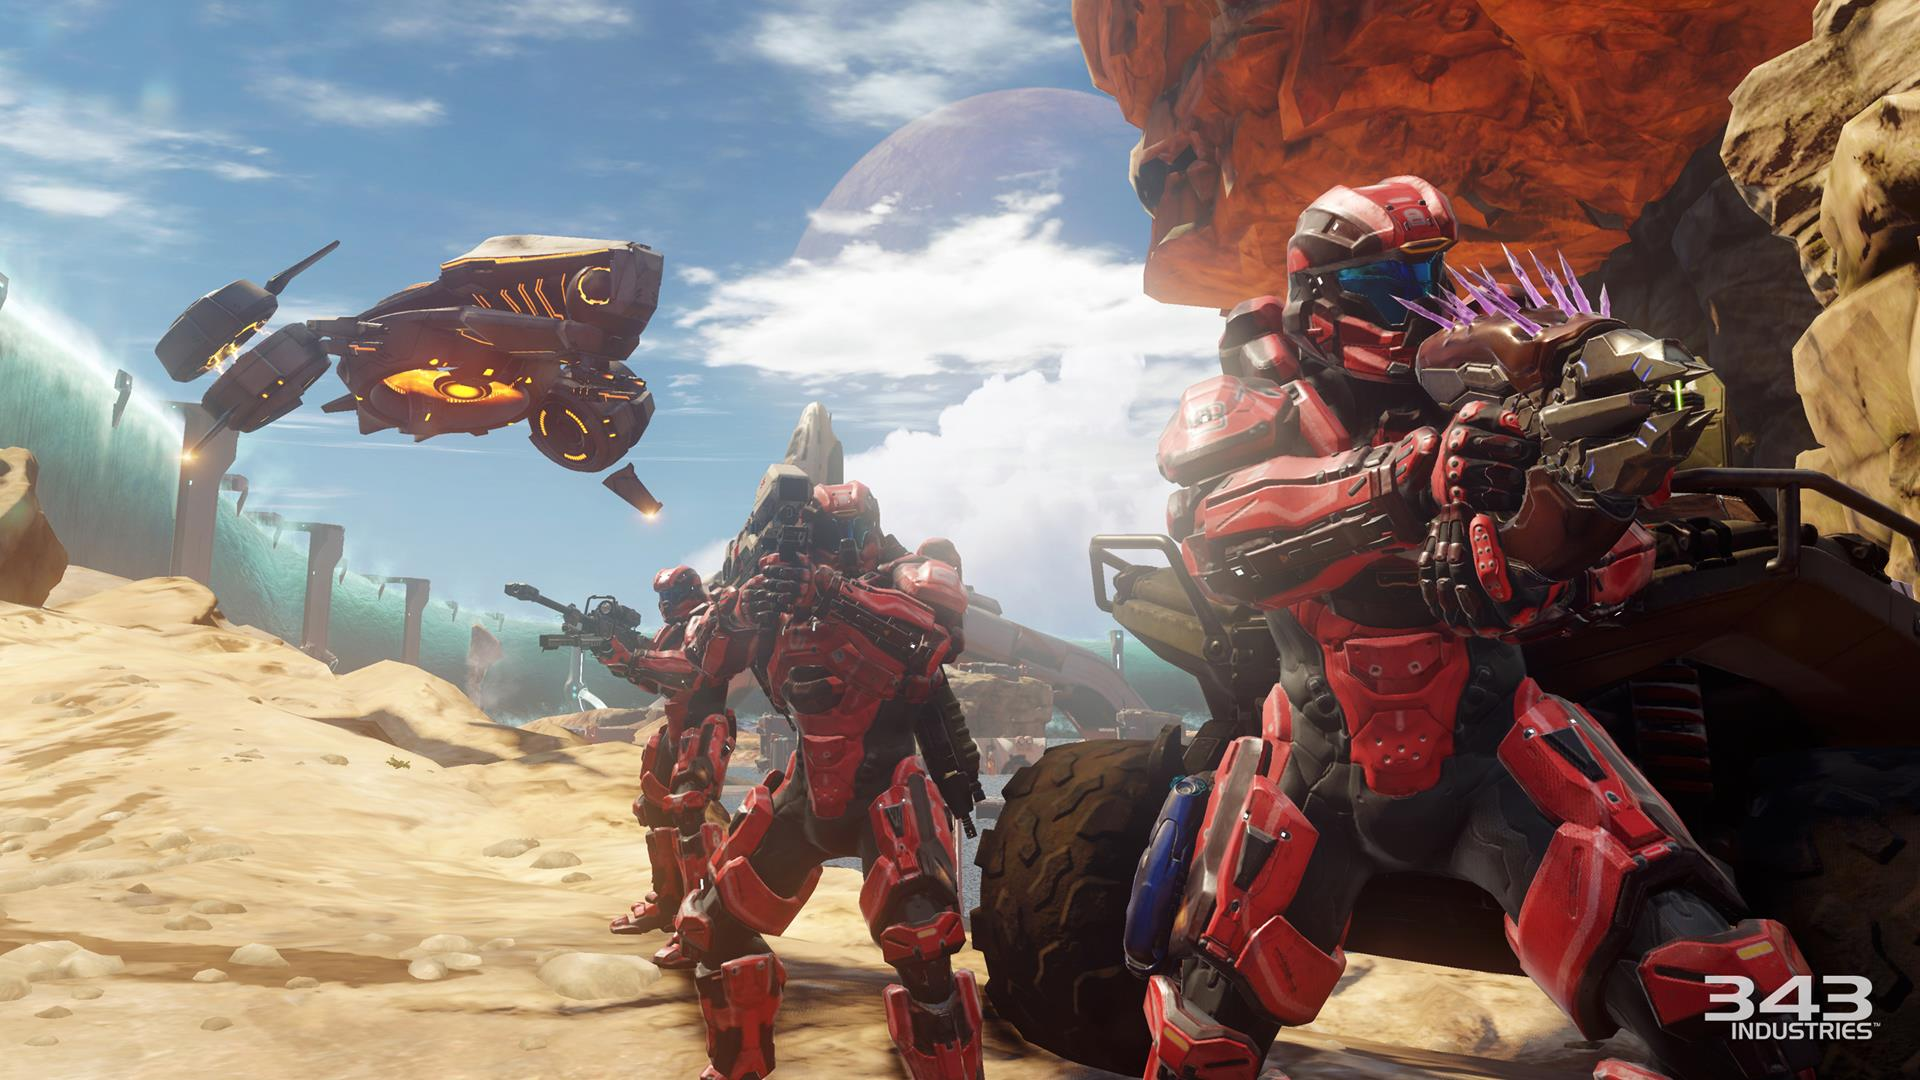 Halo 5 Guardians Screens Show Plenty Of Warzone Action